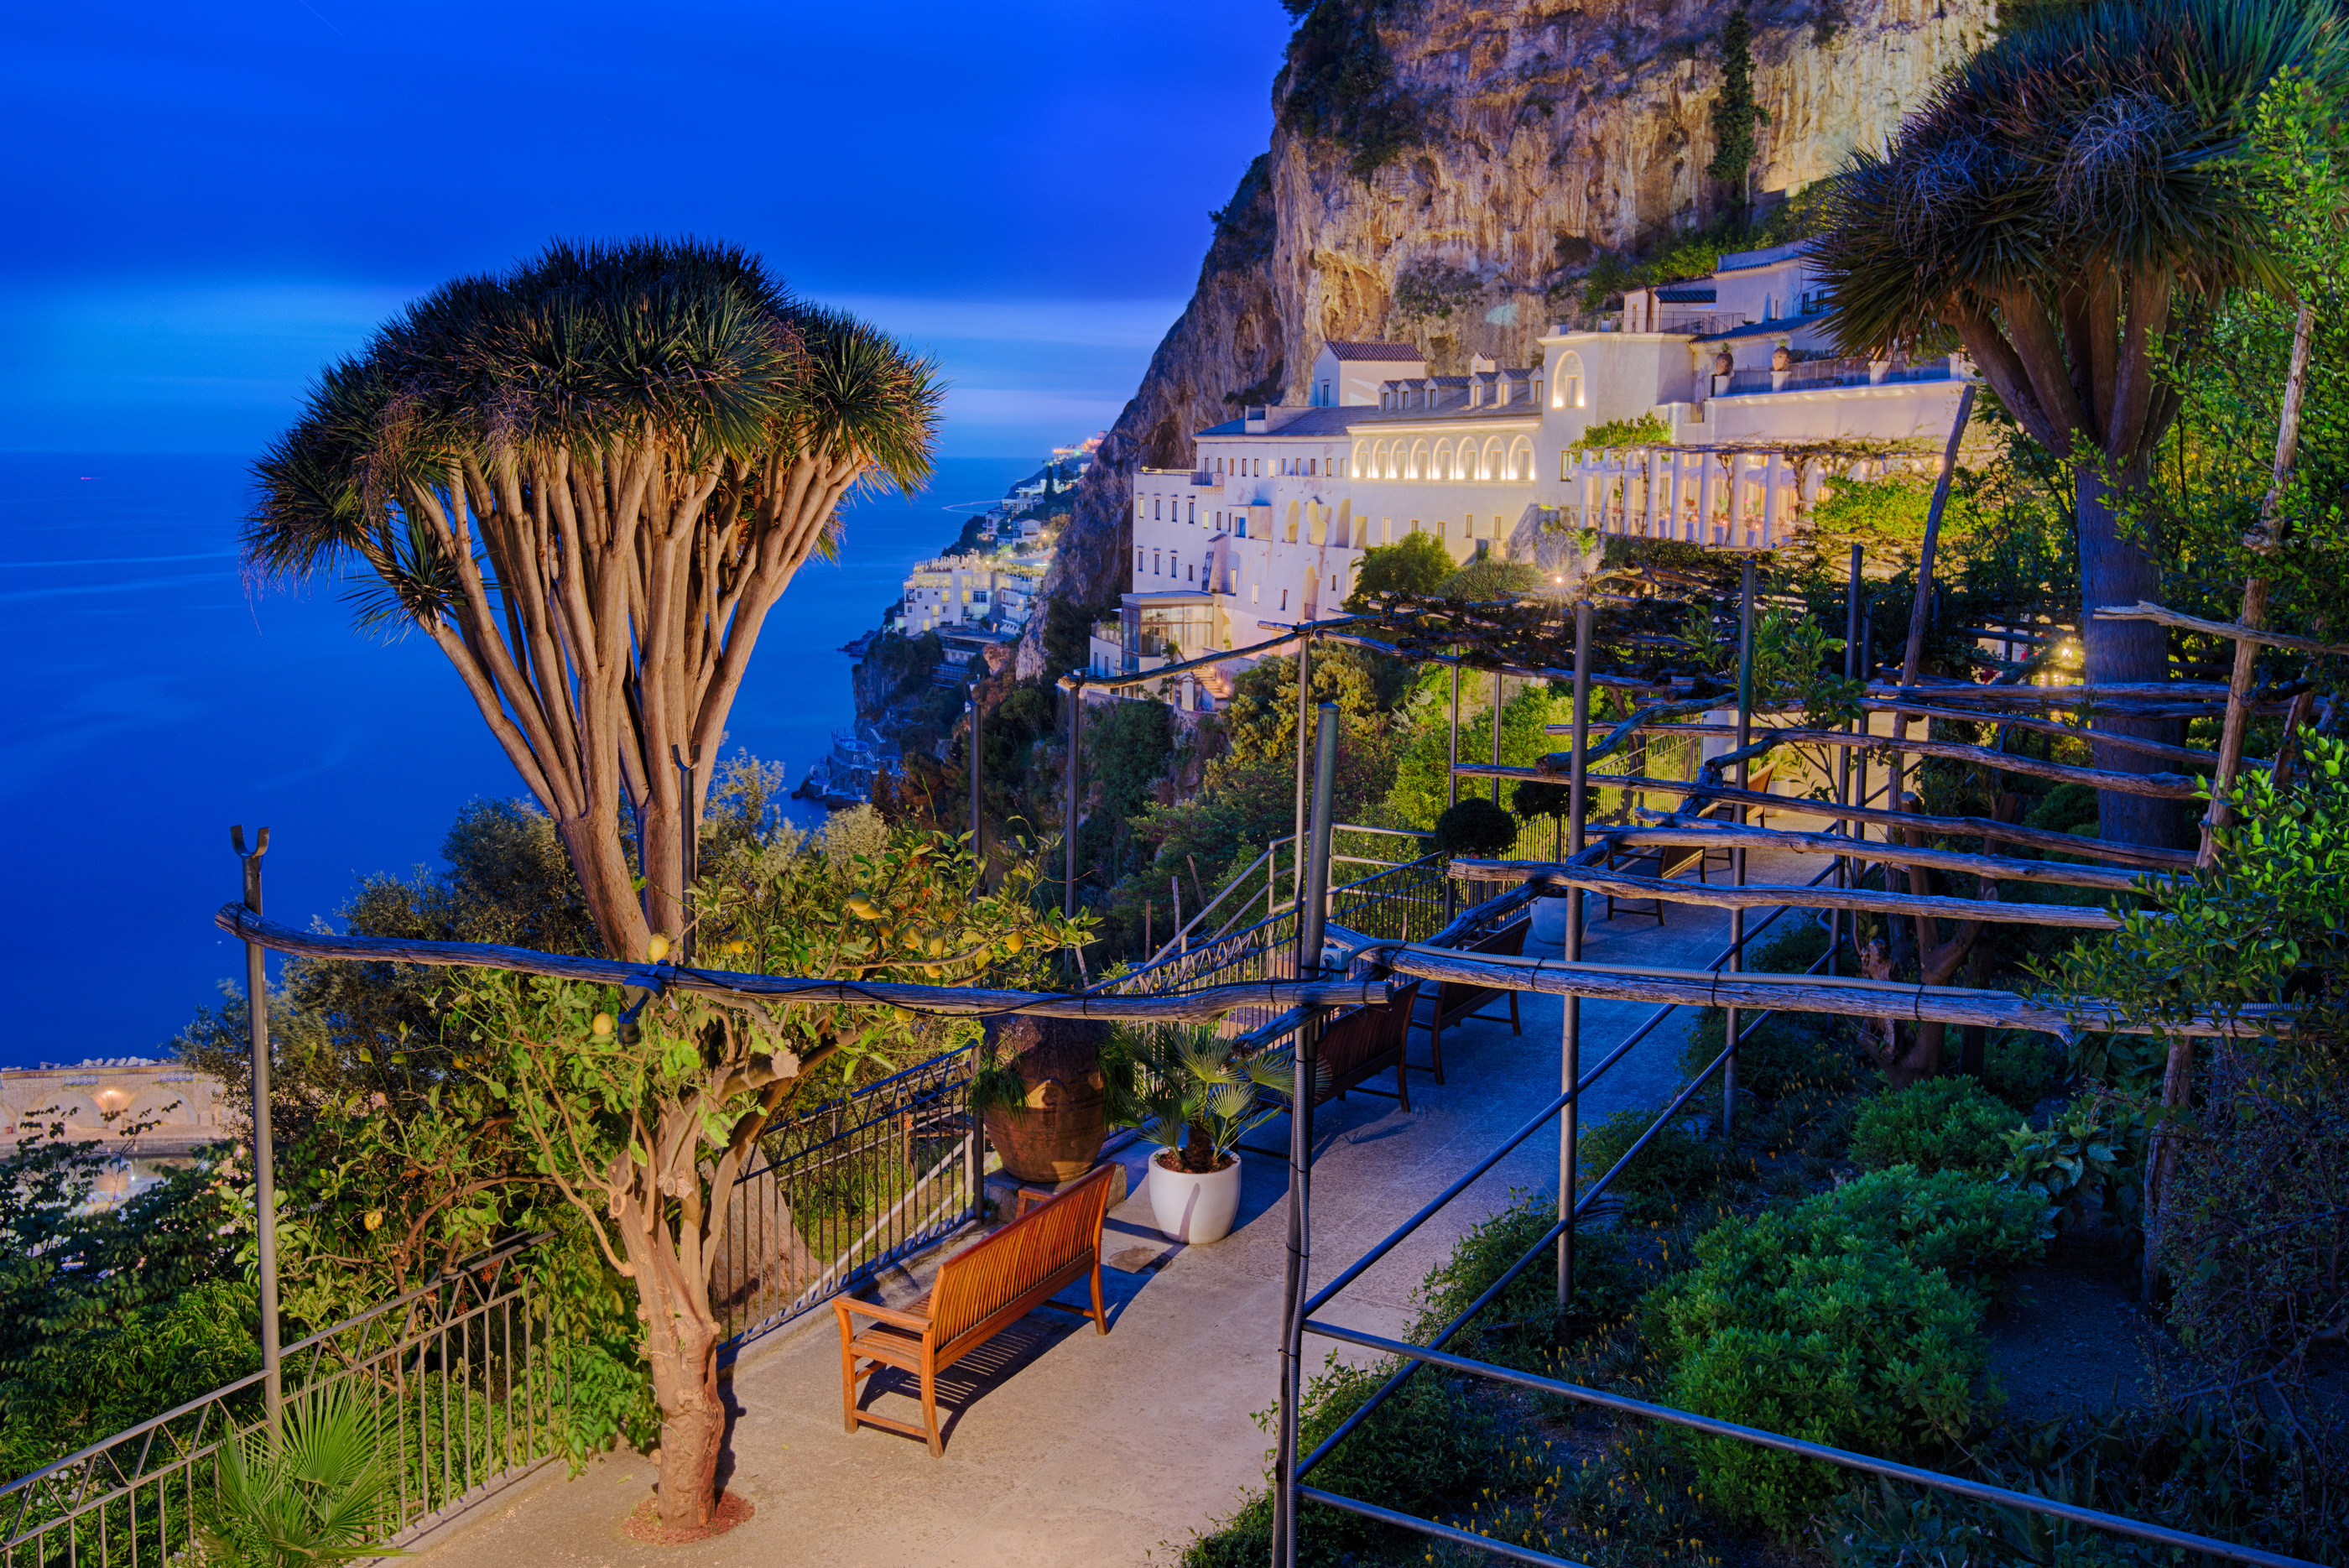 Grand hotel convento di amalfi 5 luxury hotel amalfi home for Convento di amalfi